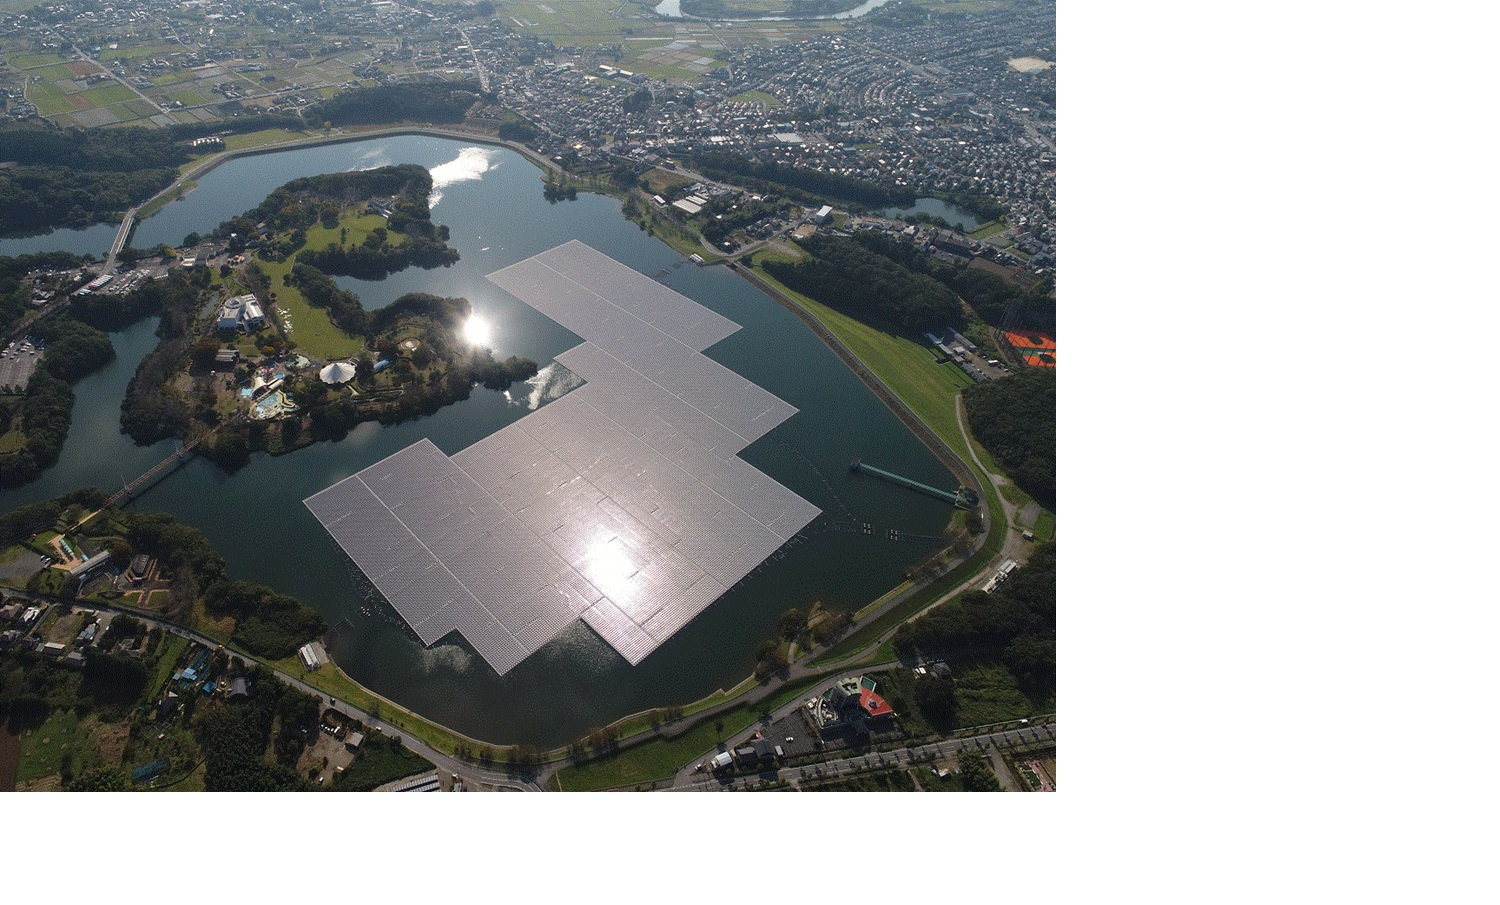 The FPV is on 180,000m2 (over 44 acres) of surface area, using 50,904 Kyocera solar modules for an estimated 16,170 megawatt hours (MWh) per year of electricity generation. ImageL Kyocera